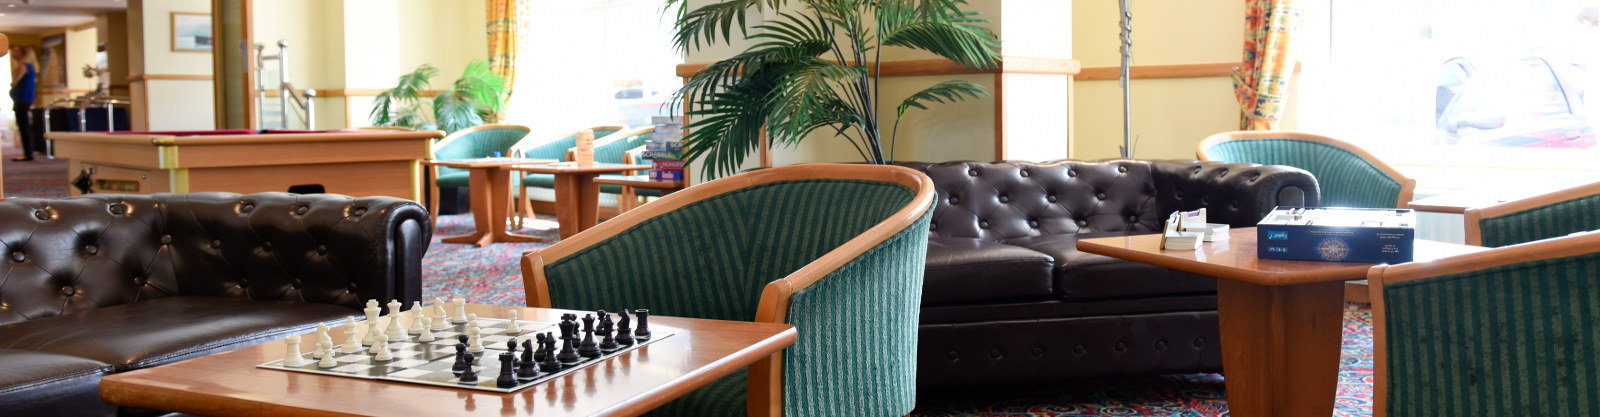 Bar Bournemouth, Games Area Bournemouth Hotel